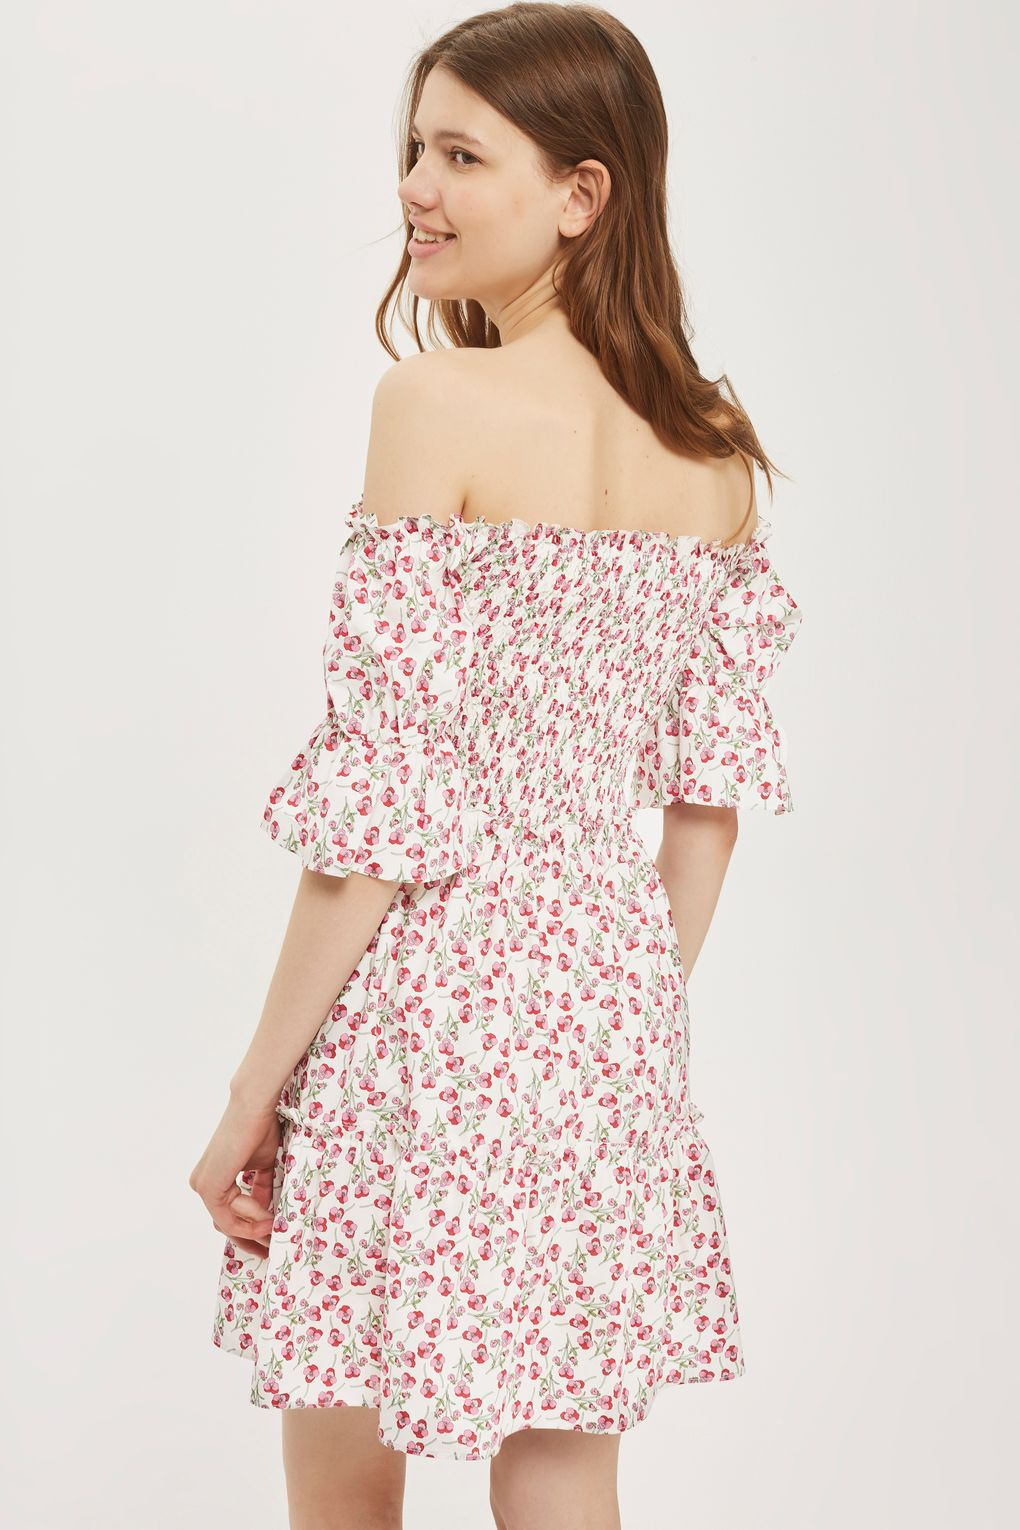 Topshop X Liberty Fabrics Bardot Rose Mini Dress Never